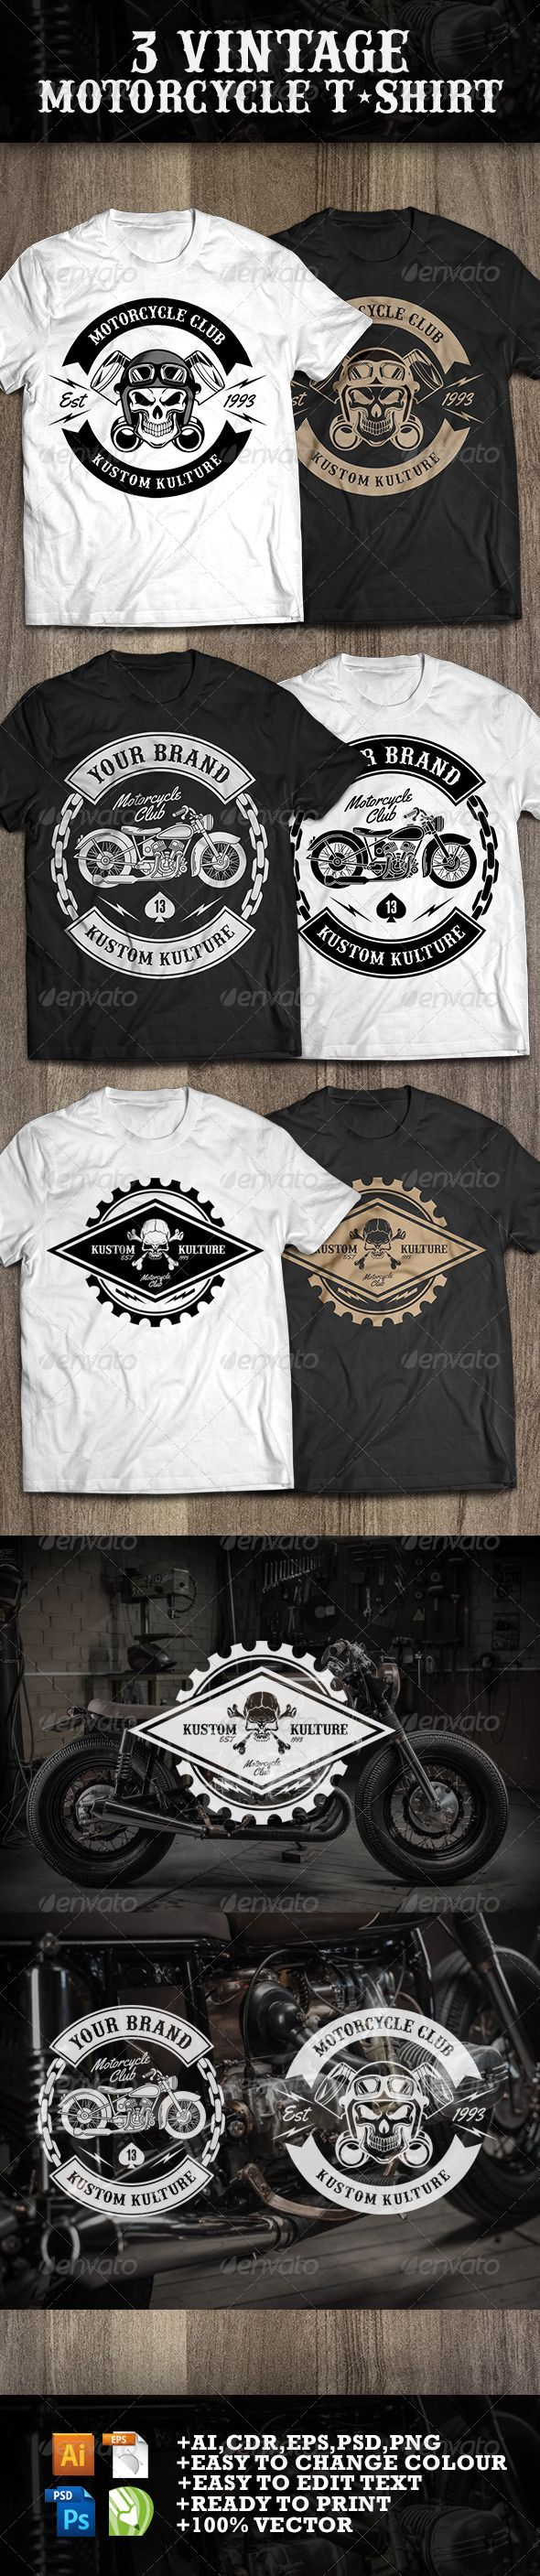 Design t shirt transfer template - 3 Vintage T Shirt Motorcycle